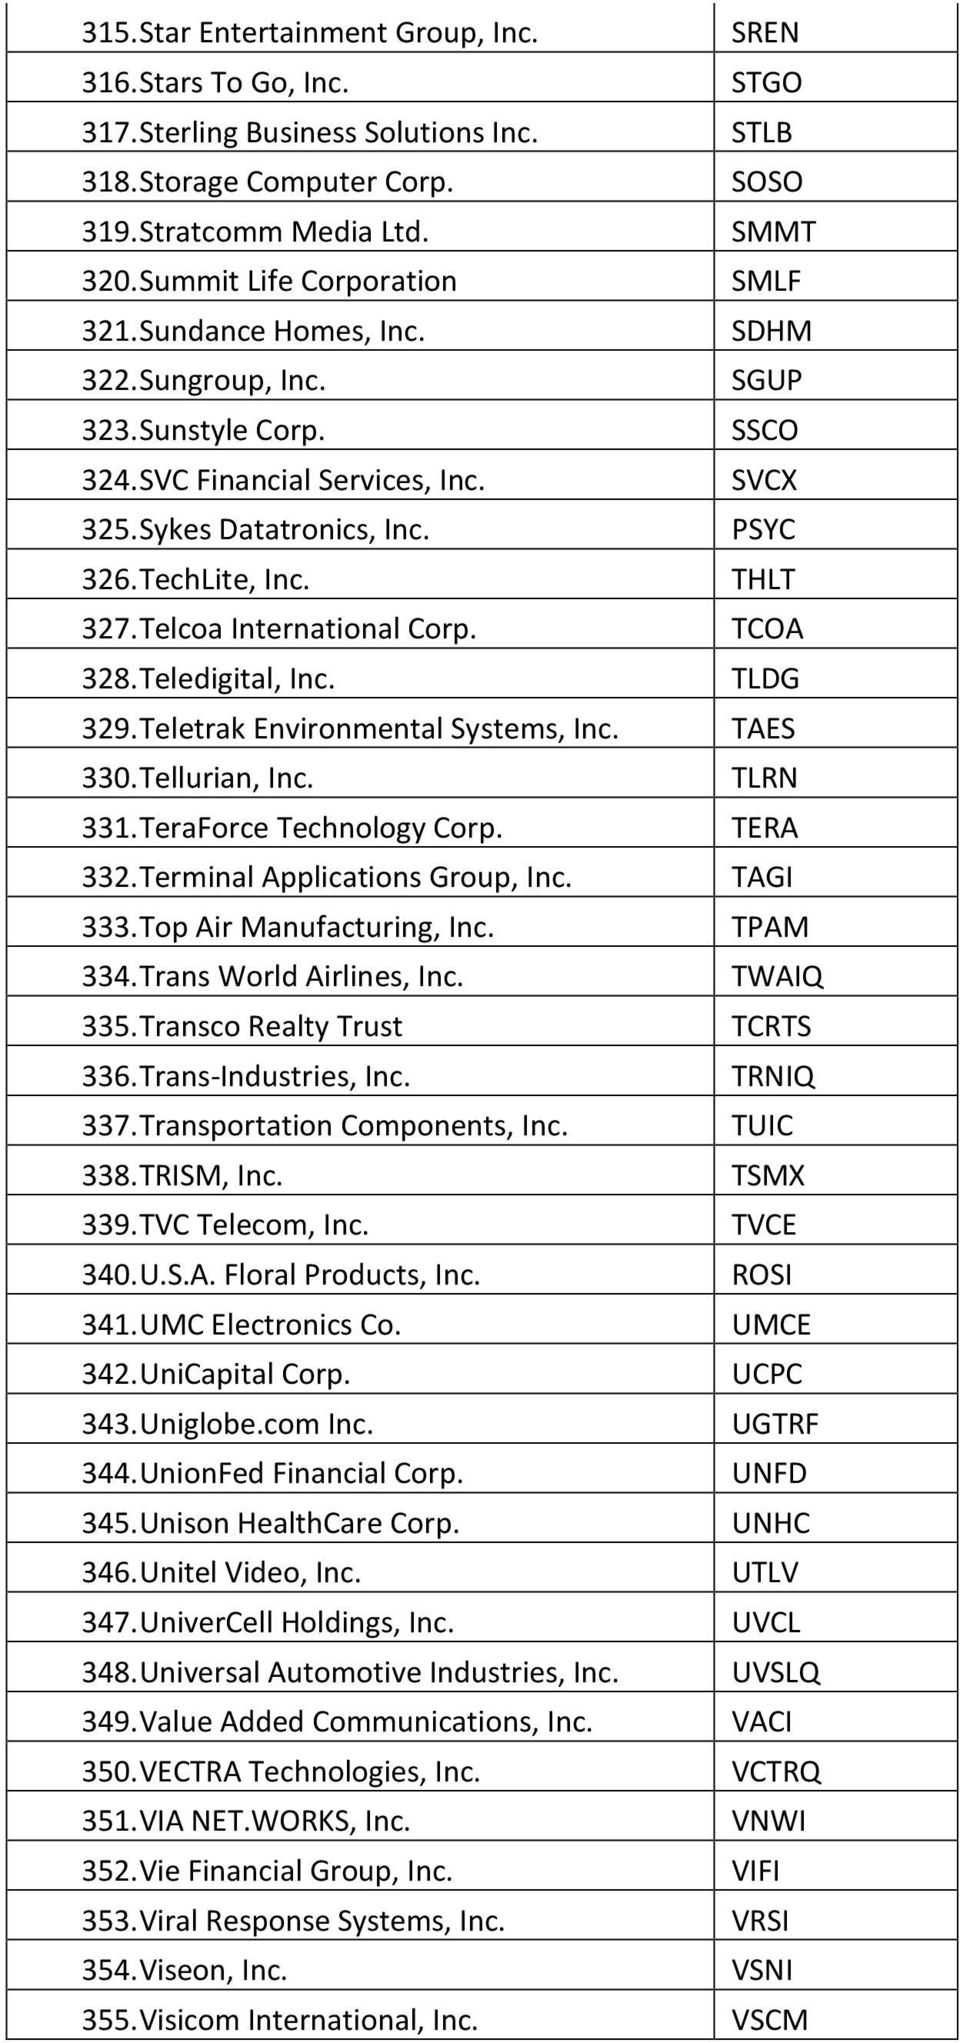 TechLite, Inc. THLT 327. Telcoa International Corp. TCOA 328. Teledigital, Inc. TLDG 329. Teletrak Environmental Systems, Inc. TAES 330. Tellurian, Inc. TLRN 331. TeraForce Technology Corp. TERA 332.